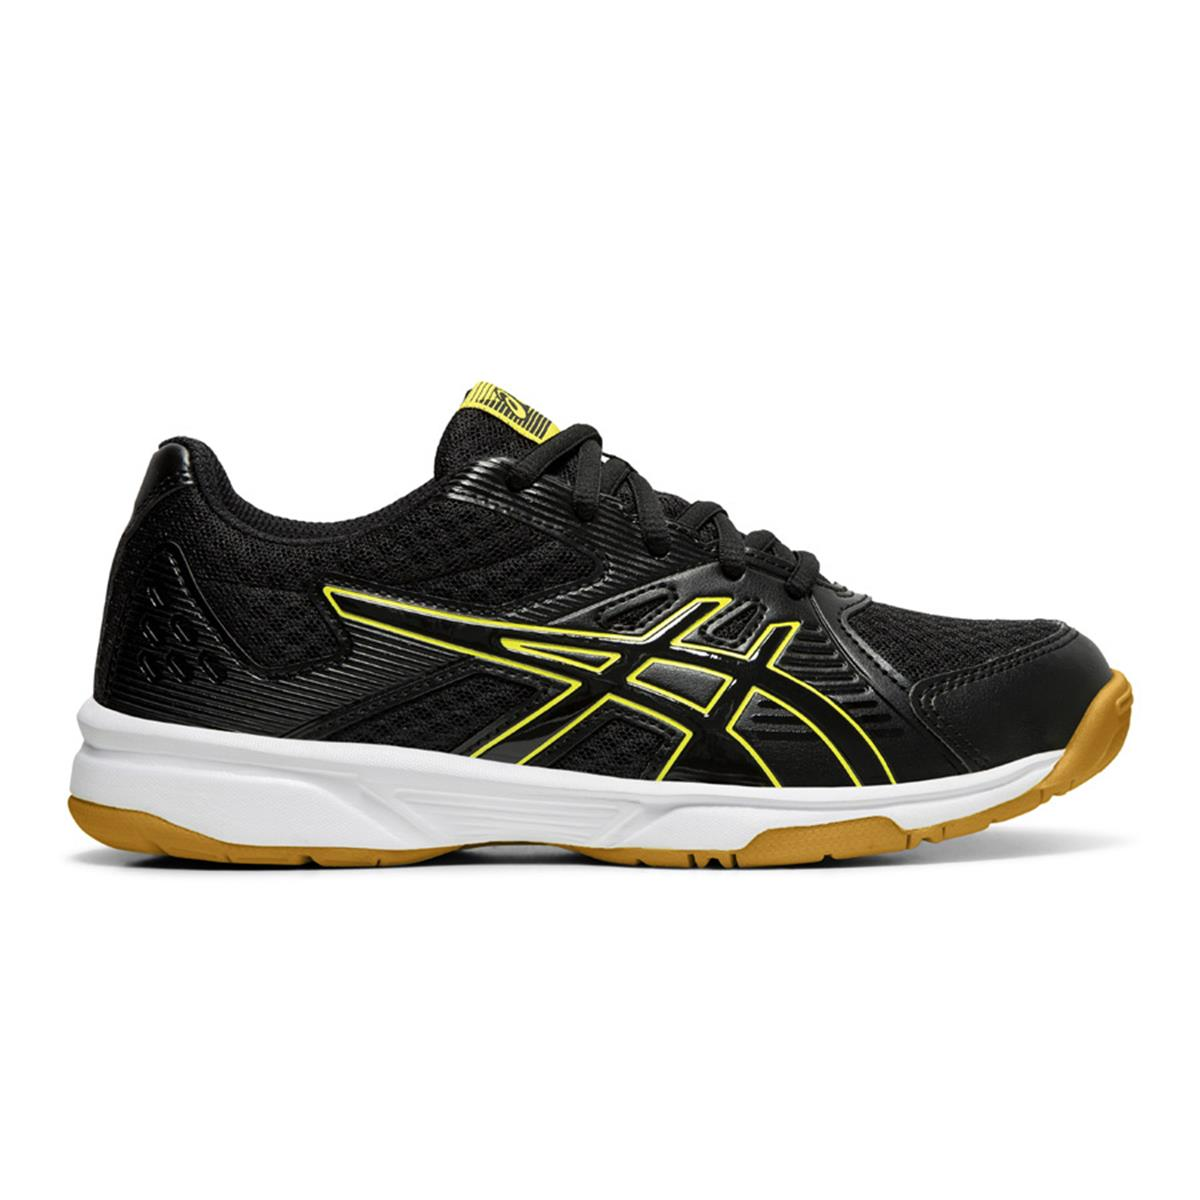 b6da249bbf2 Asics Gel Upcourt 3 GS Junior Court Shoes (Black-Sour Yuzu) |  directsportsEshop.co.uk